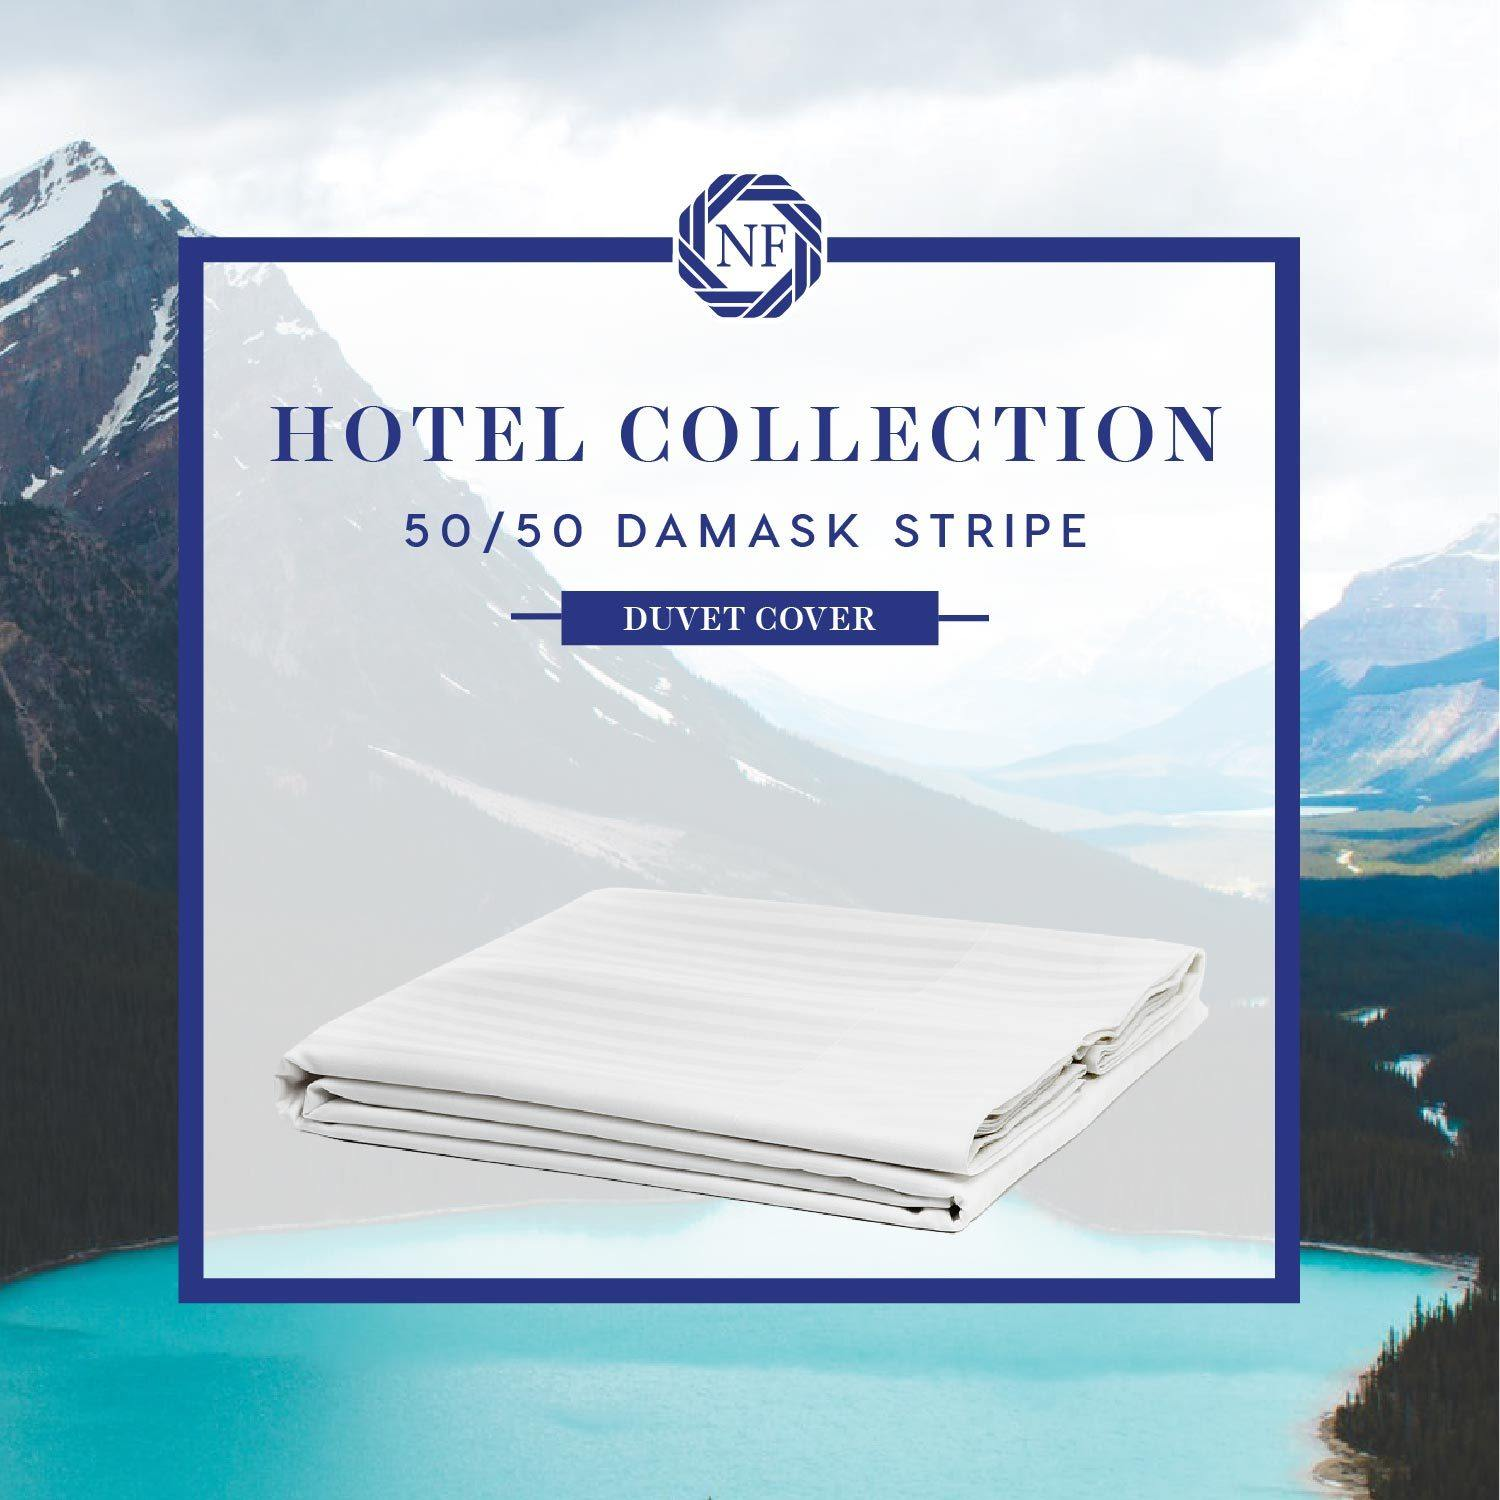 Hotel Collection 50/50 Damask Stripe Linen